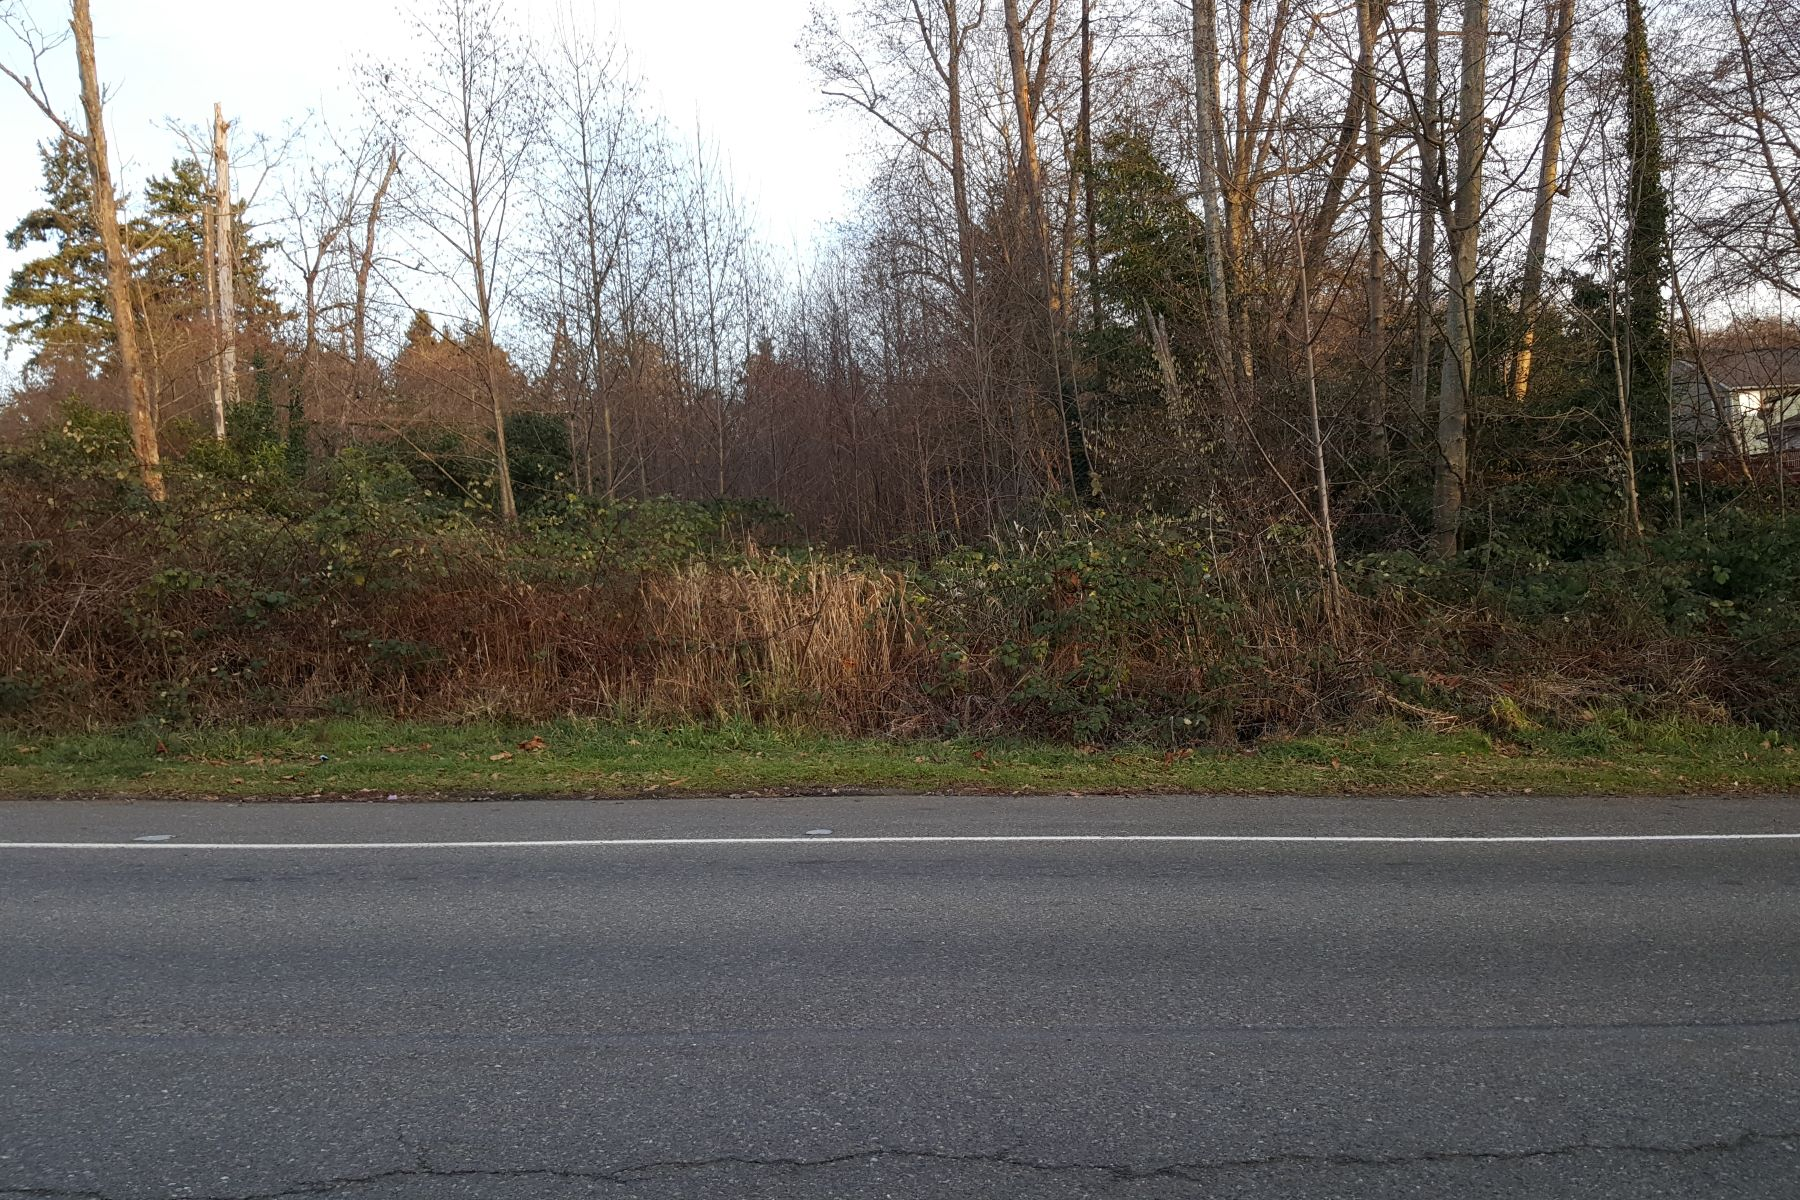 Land for Sale at Vacant Land - Build Your Dream Home in Des Moines 22 XX 19th Ave South Des Moines, Washington 98198 United States